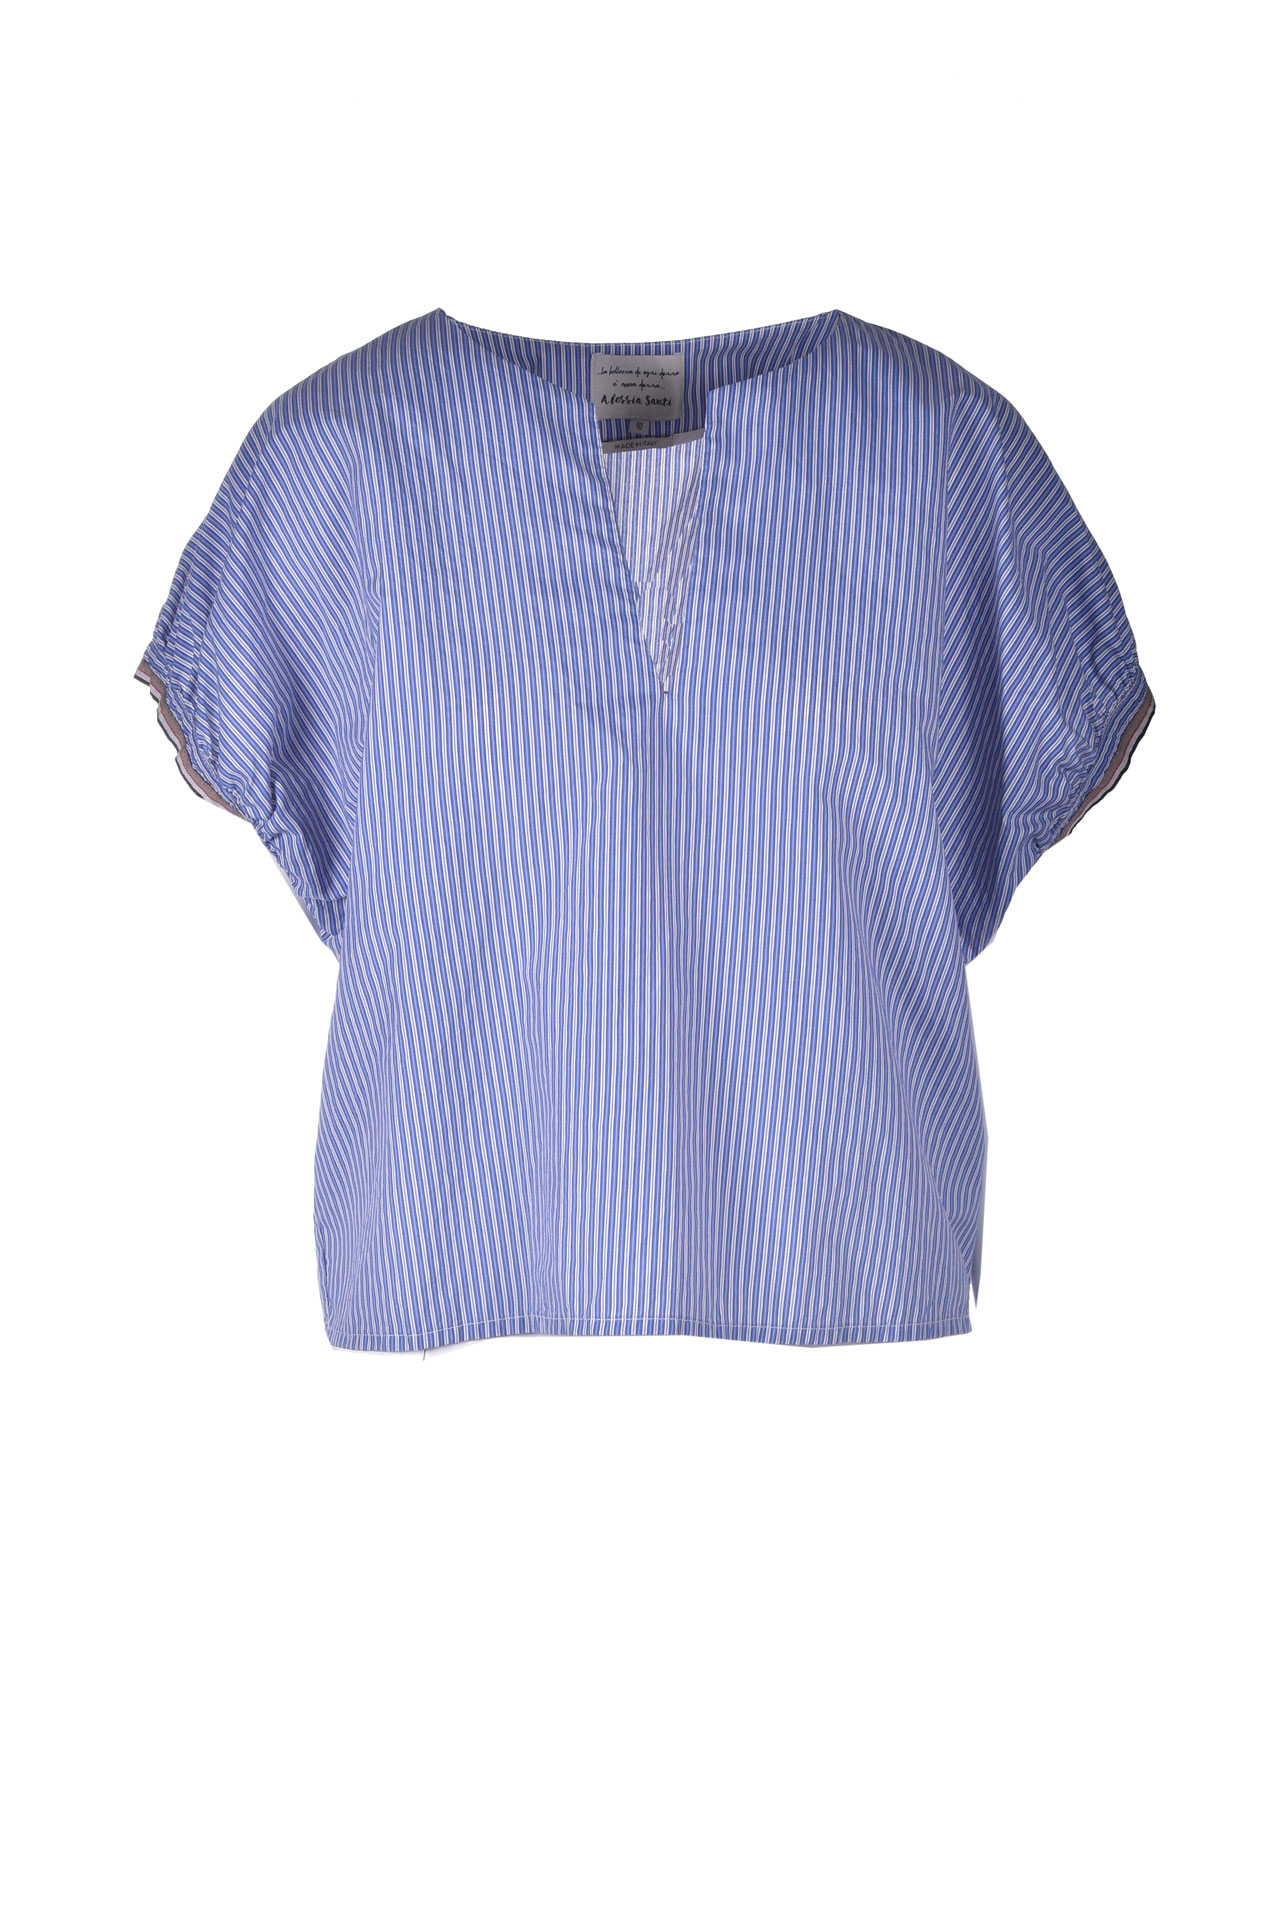 Silk blend blouse with blue stripes ALESSIA SANTI | Blouses | 45033119044-01